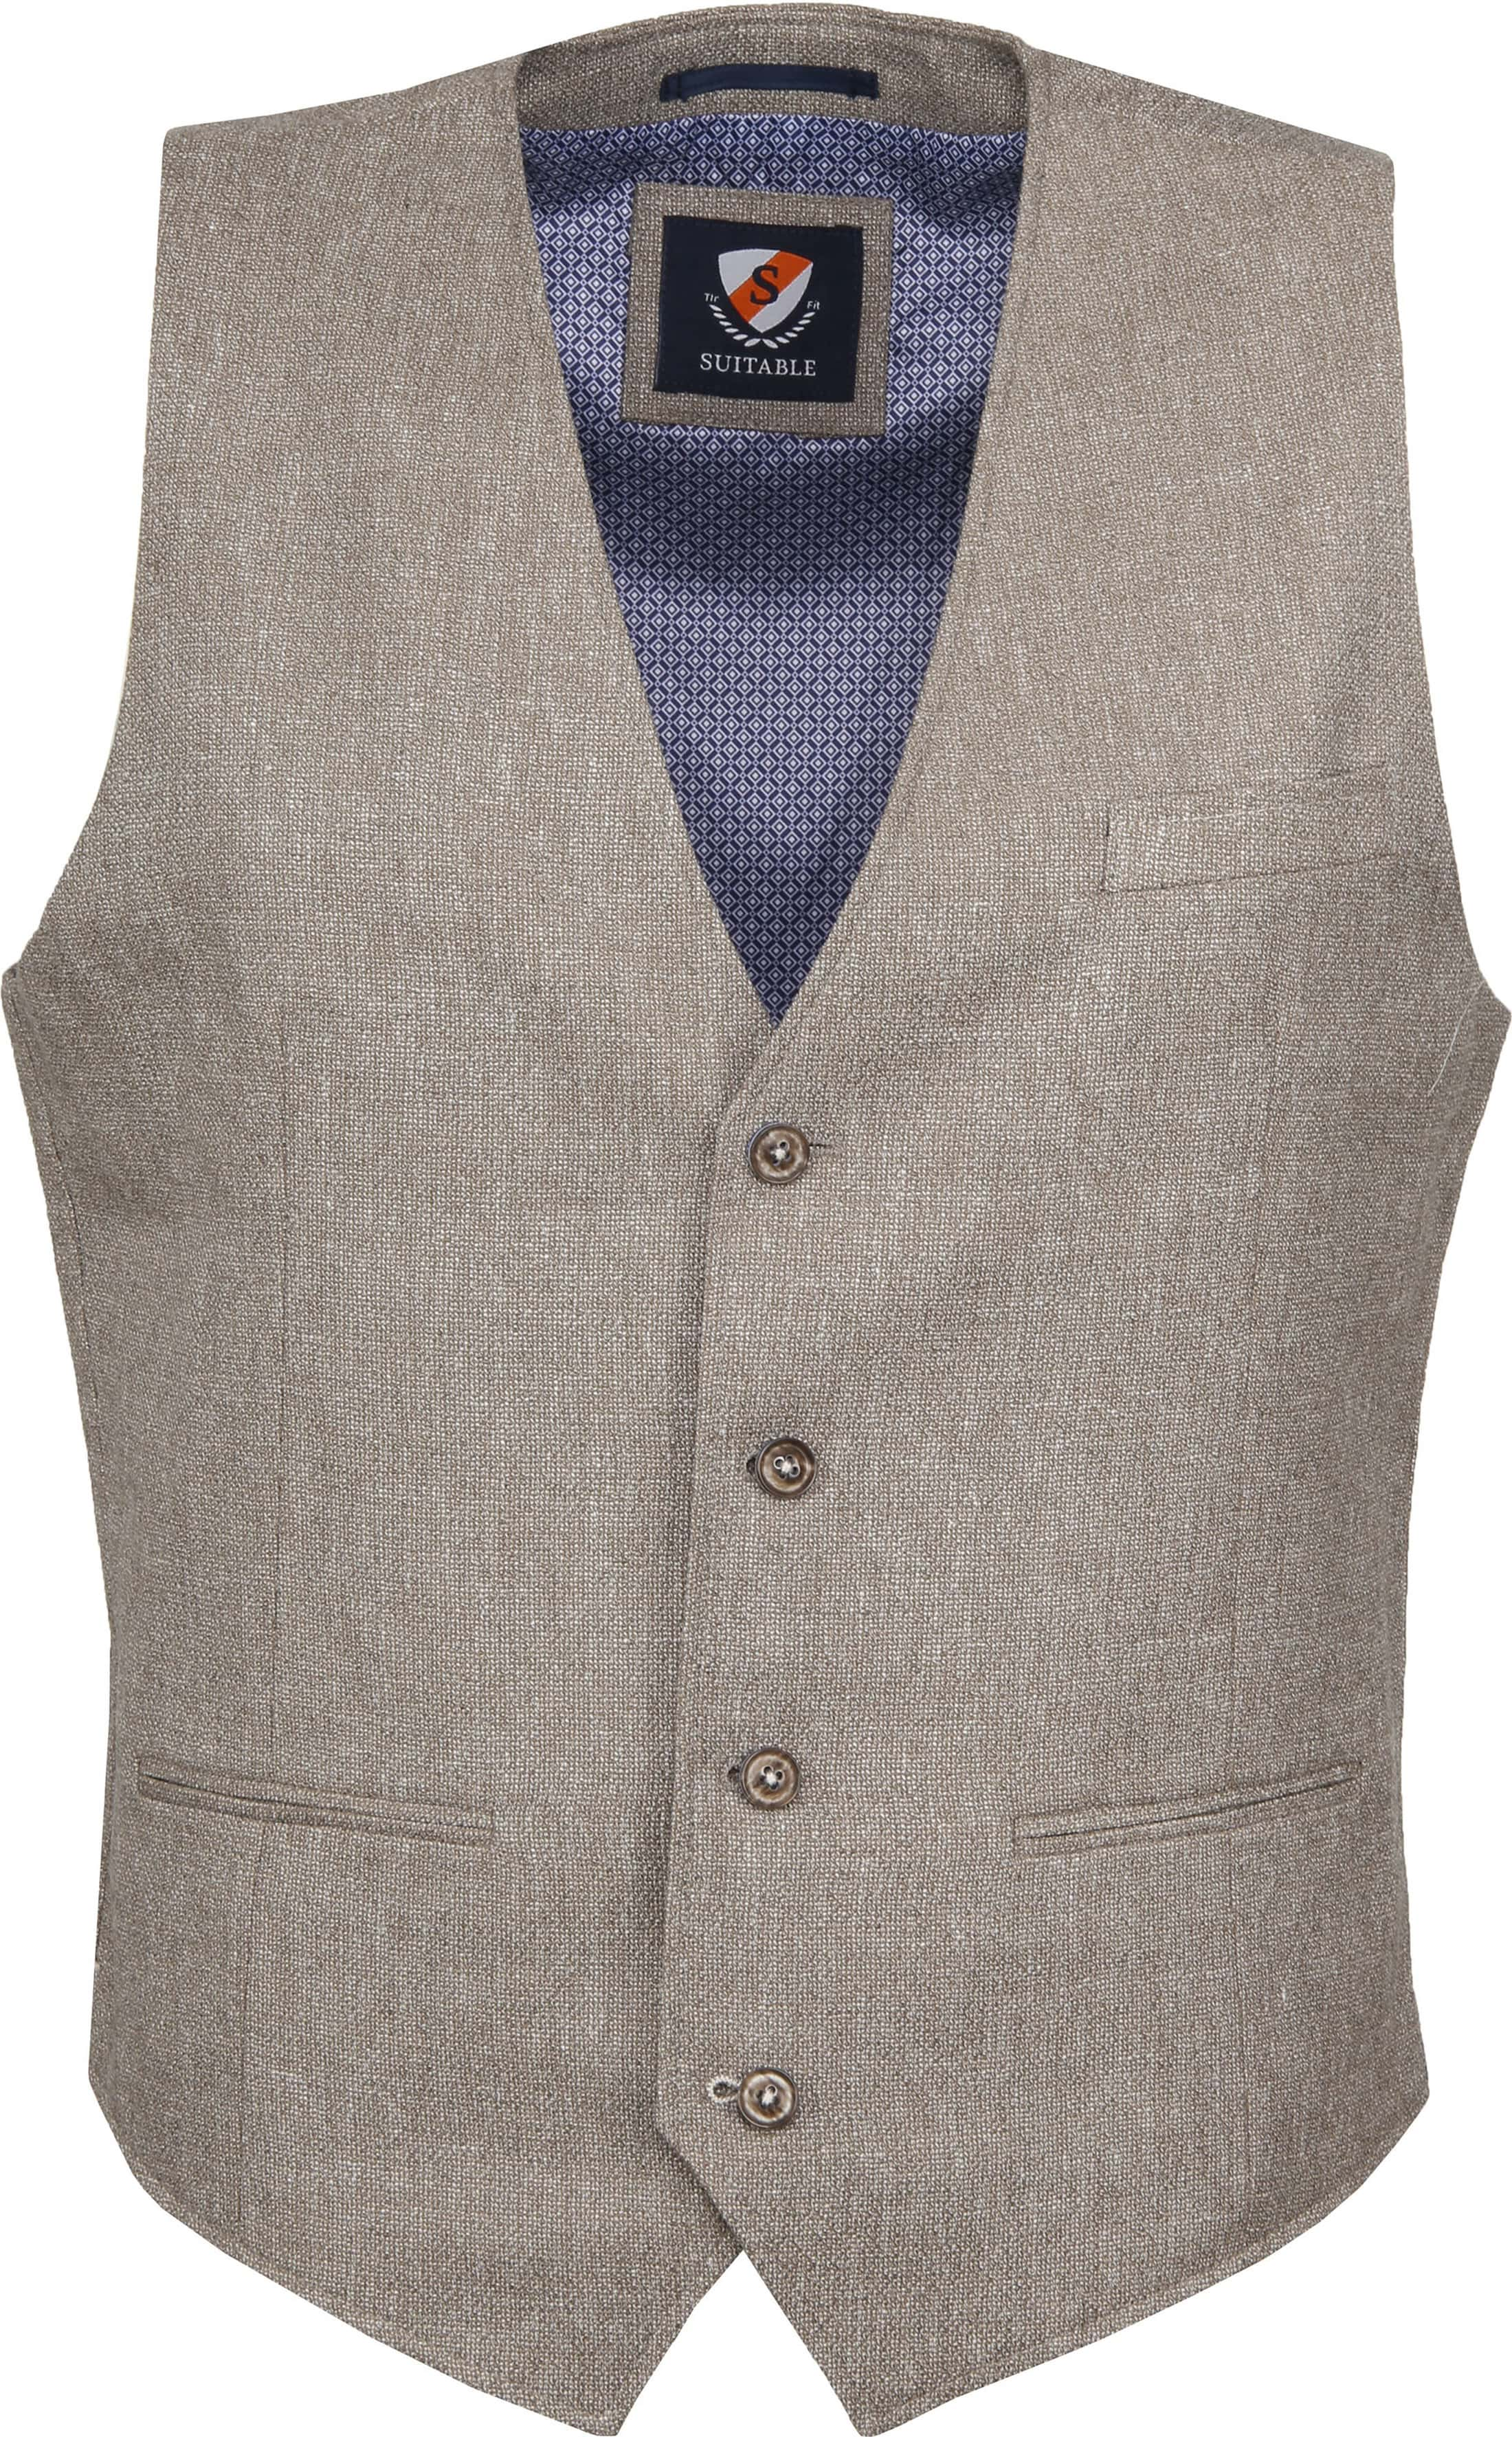 Suitable Gilet Kris Tolo Brown